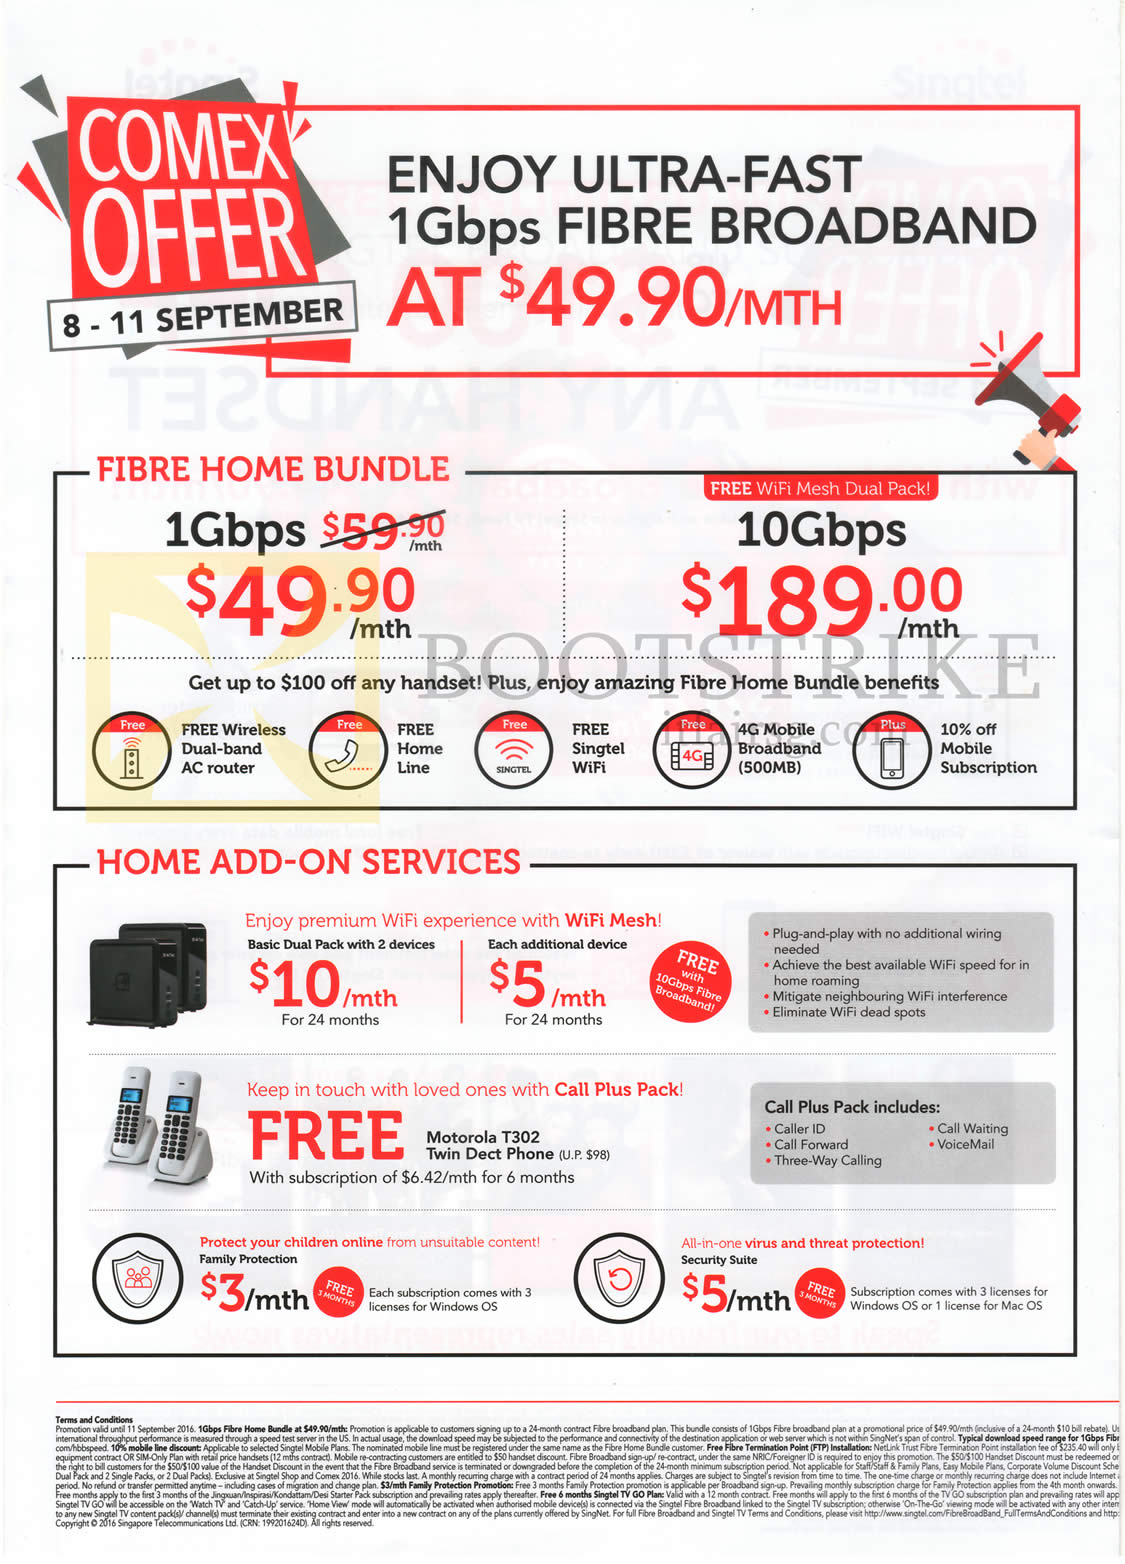 COMEX 2016 price list image brochure of Singtel Fibre Home Bundle, Home Add-On Services, 49.90 1Gbps, 189.00 10Gbps Fibre Home Bundles